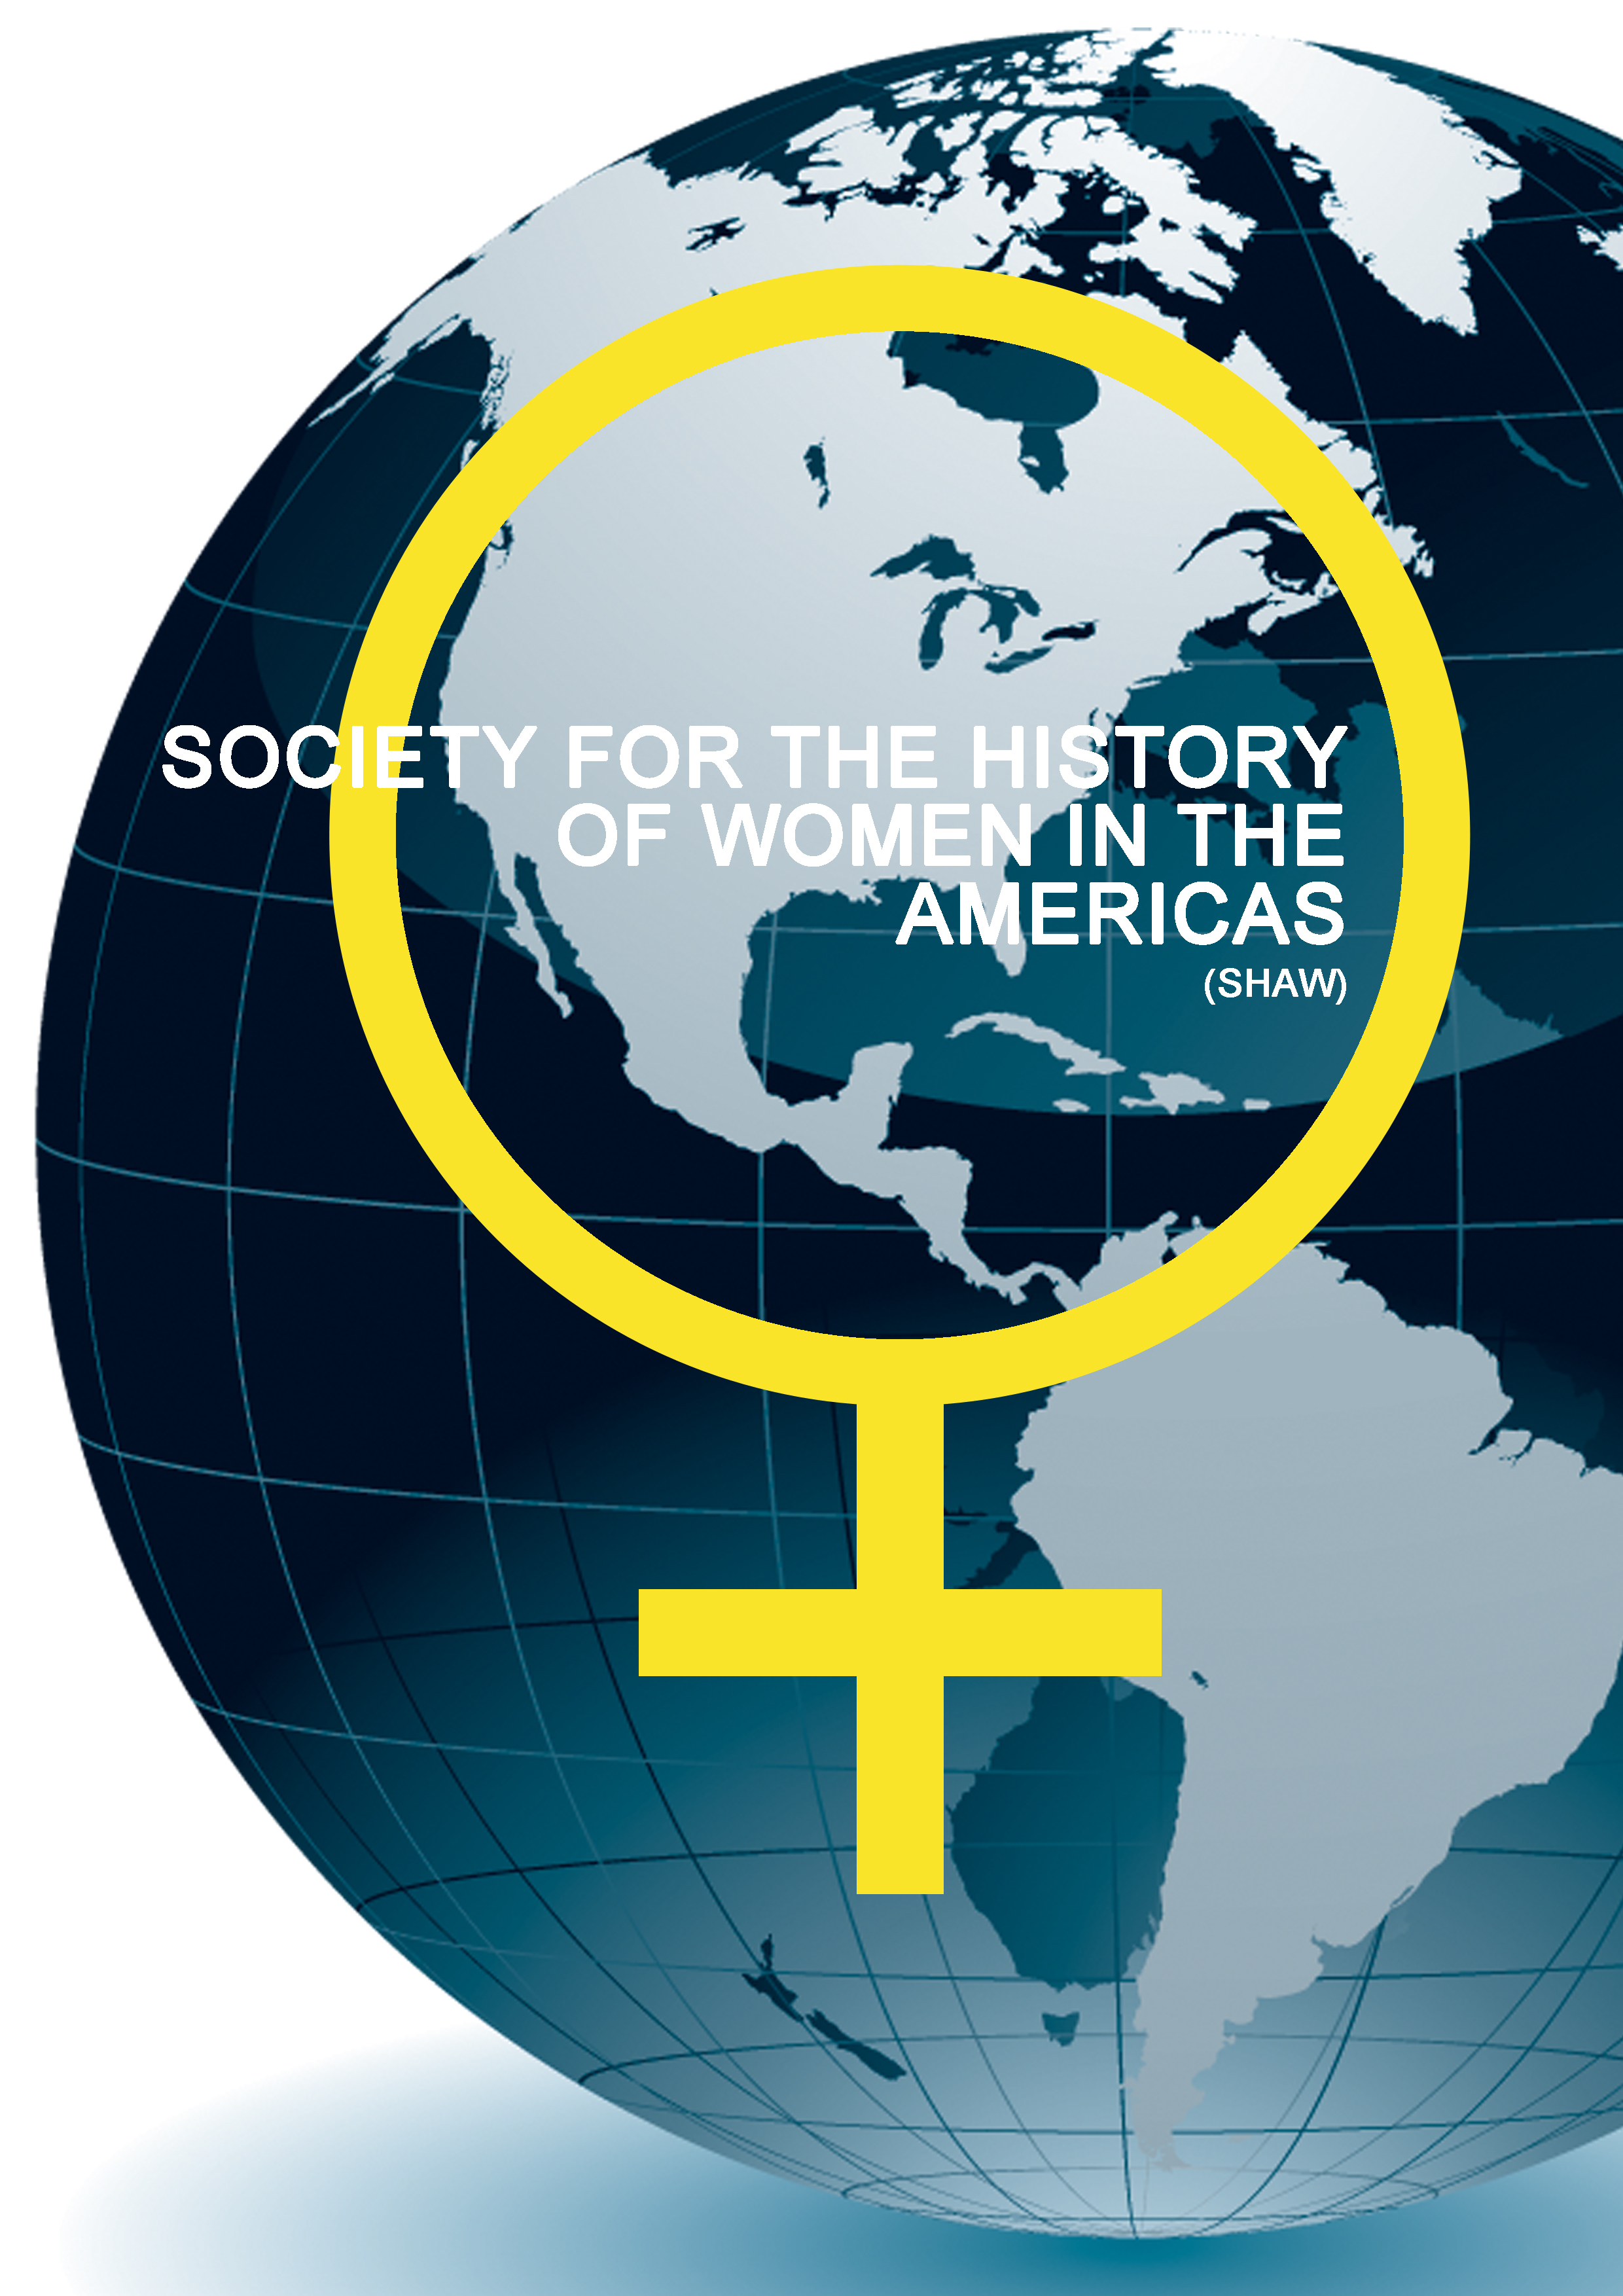 Society for the History of Women in the Americas